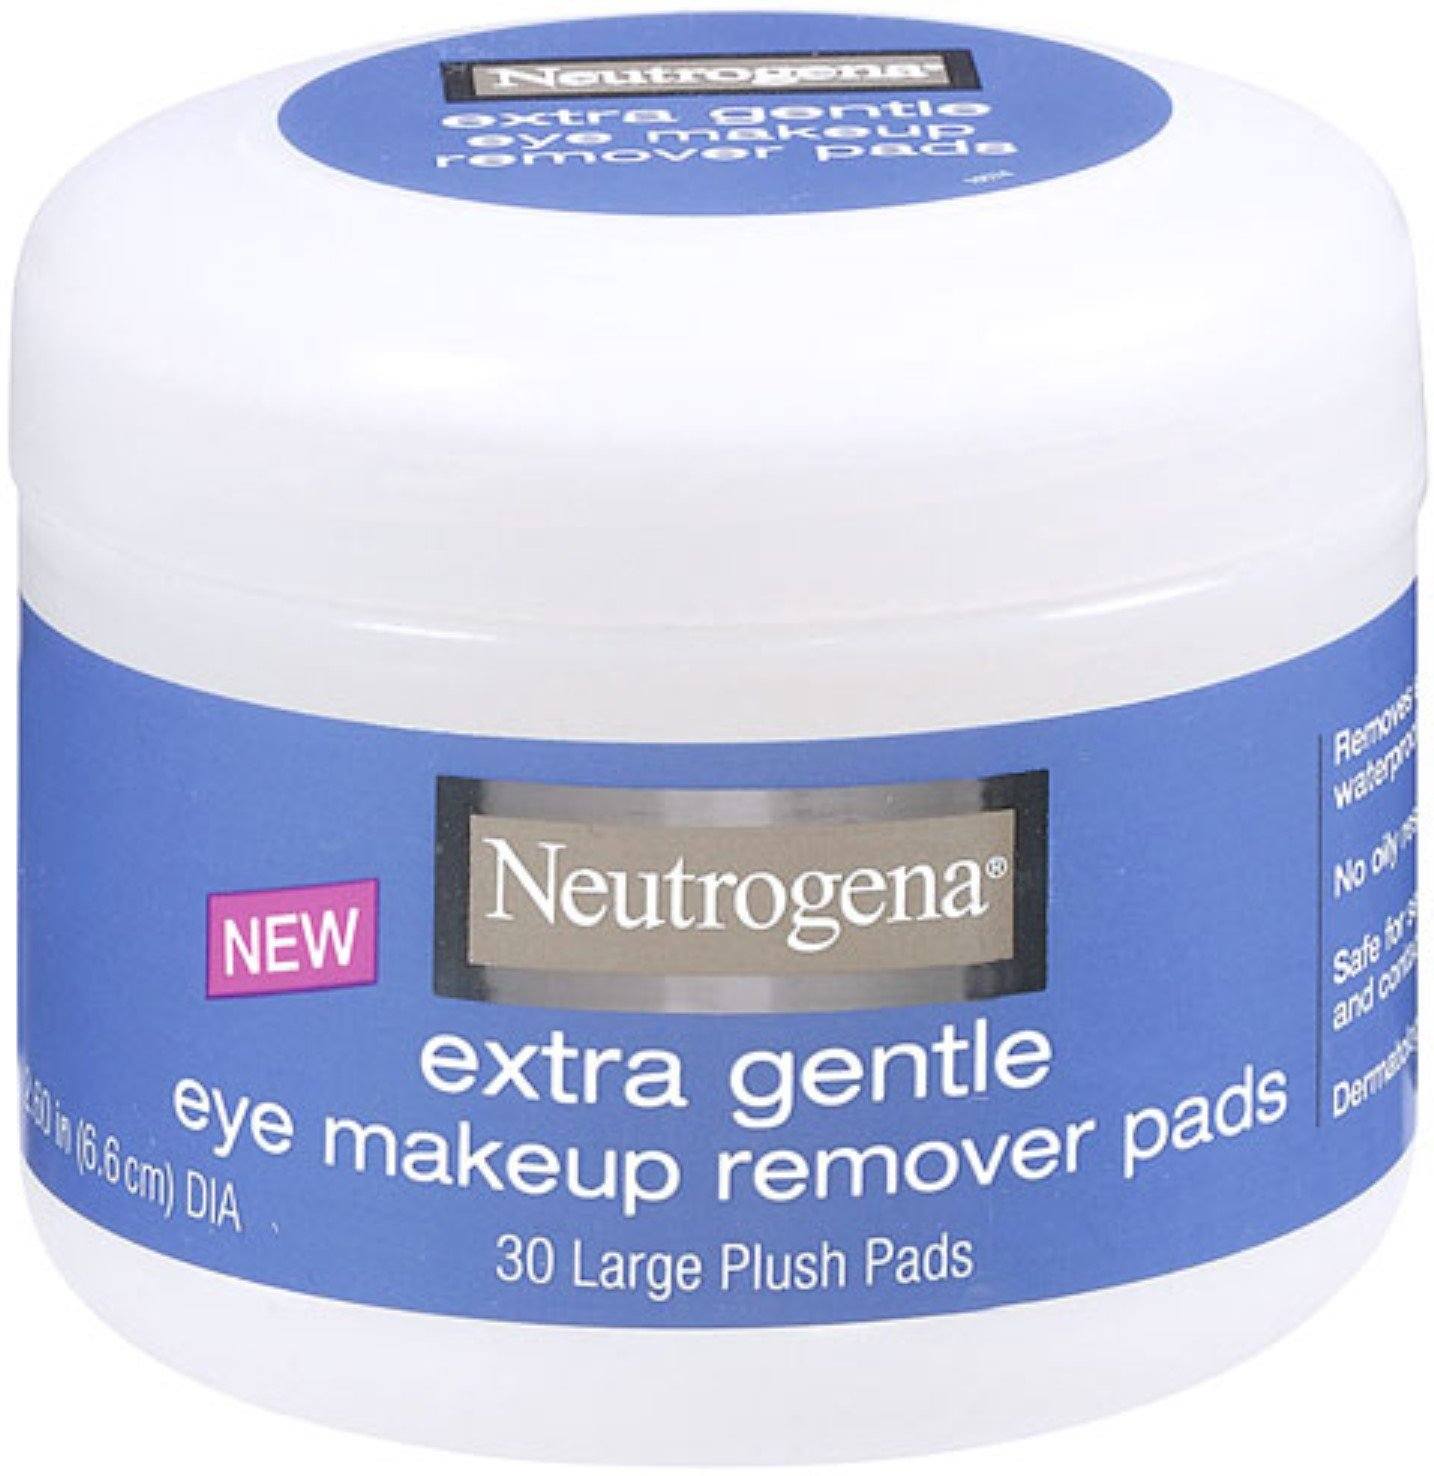 Neutrogena Deep Clean Makeup Removers, Extra Gentle Makeup Remover Pads, 30 Count (Pack of 2) by Neutrogena